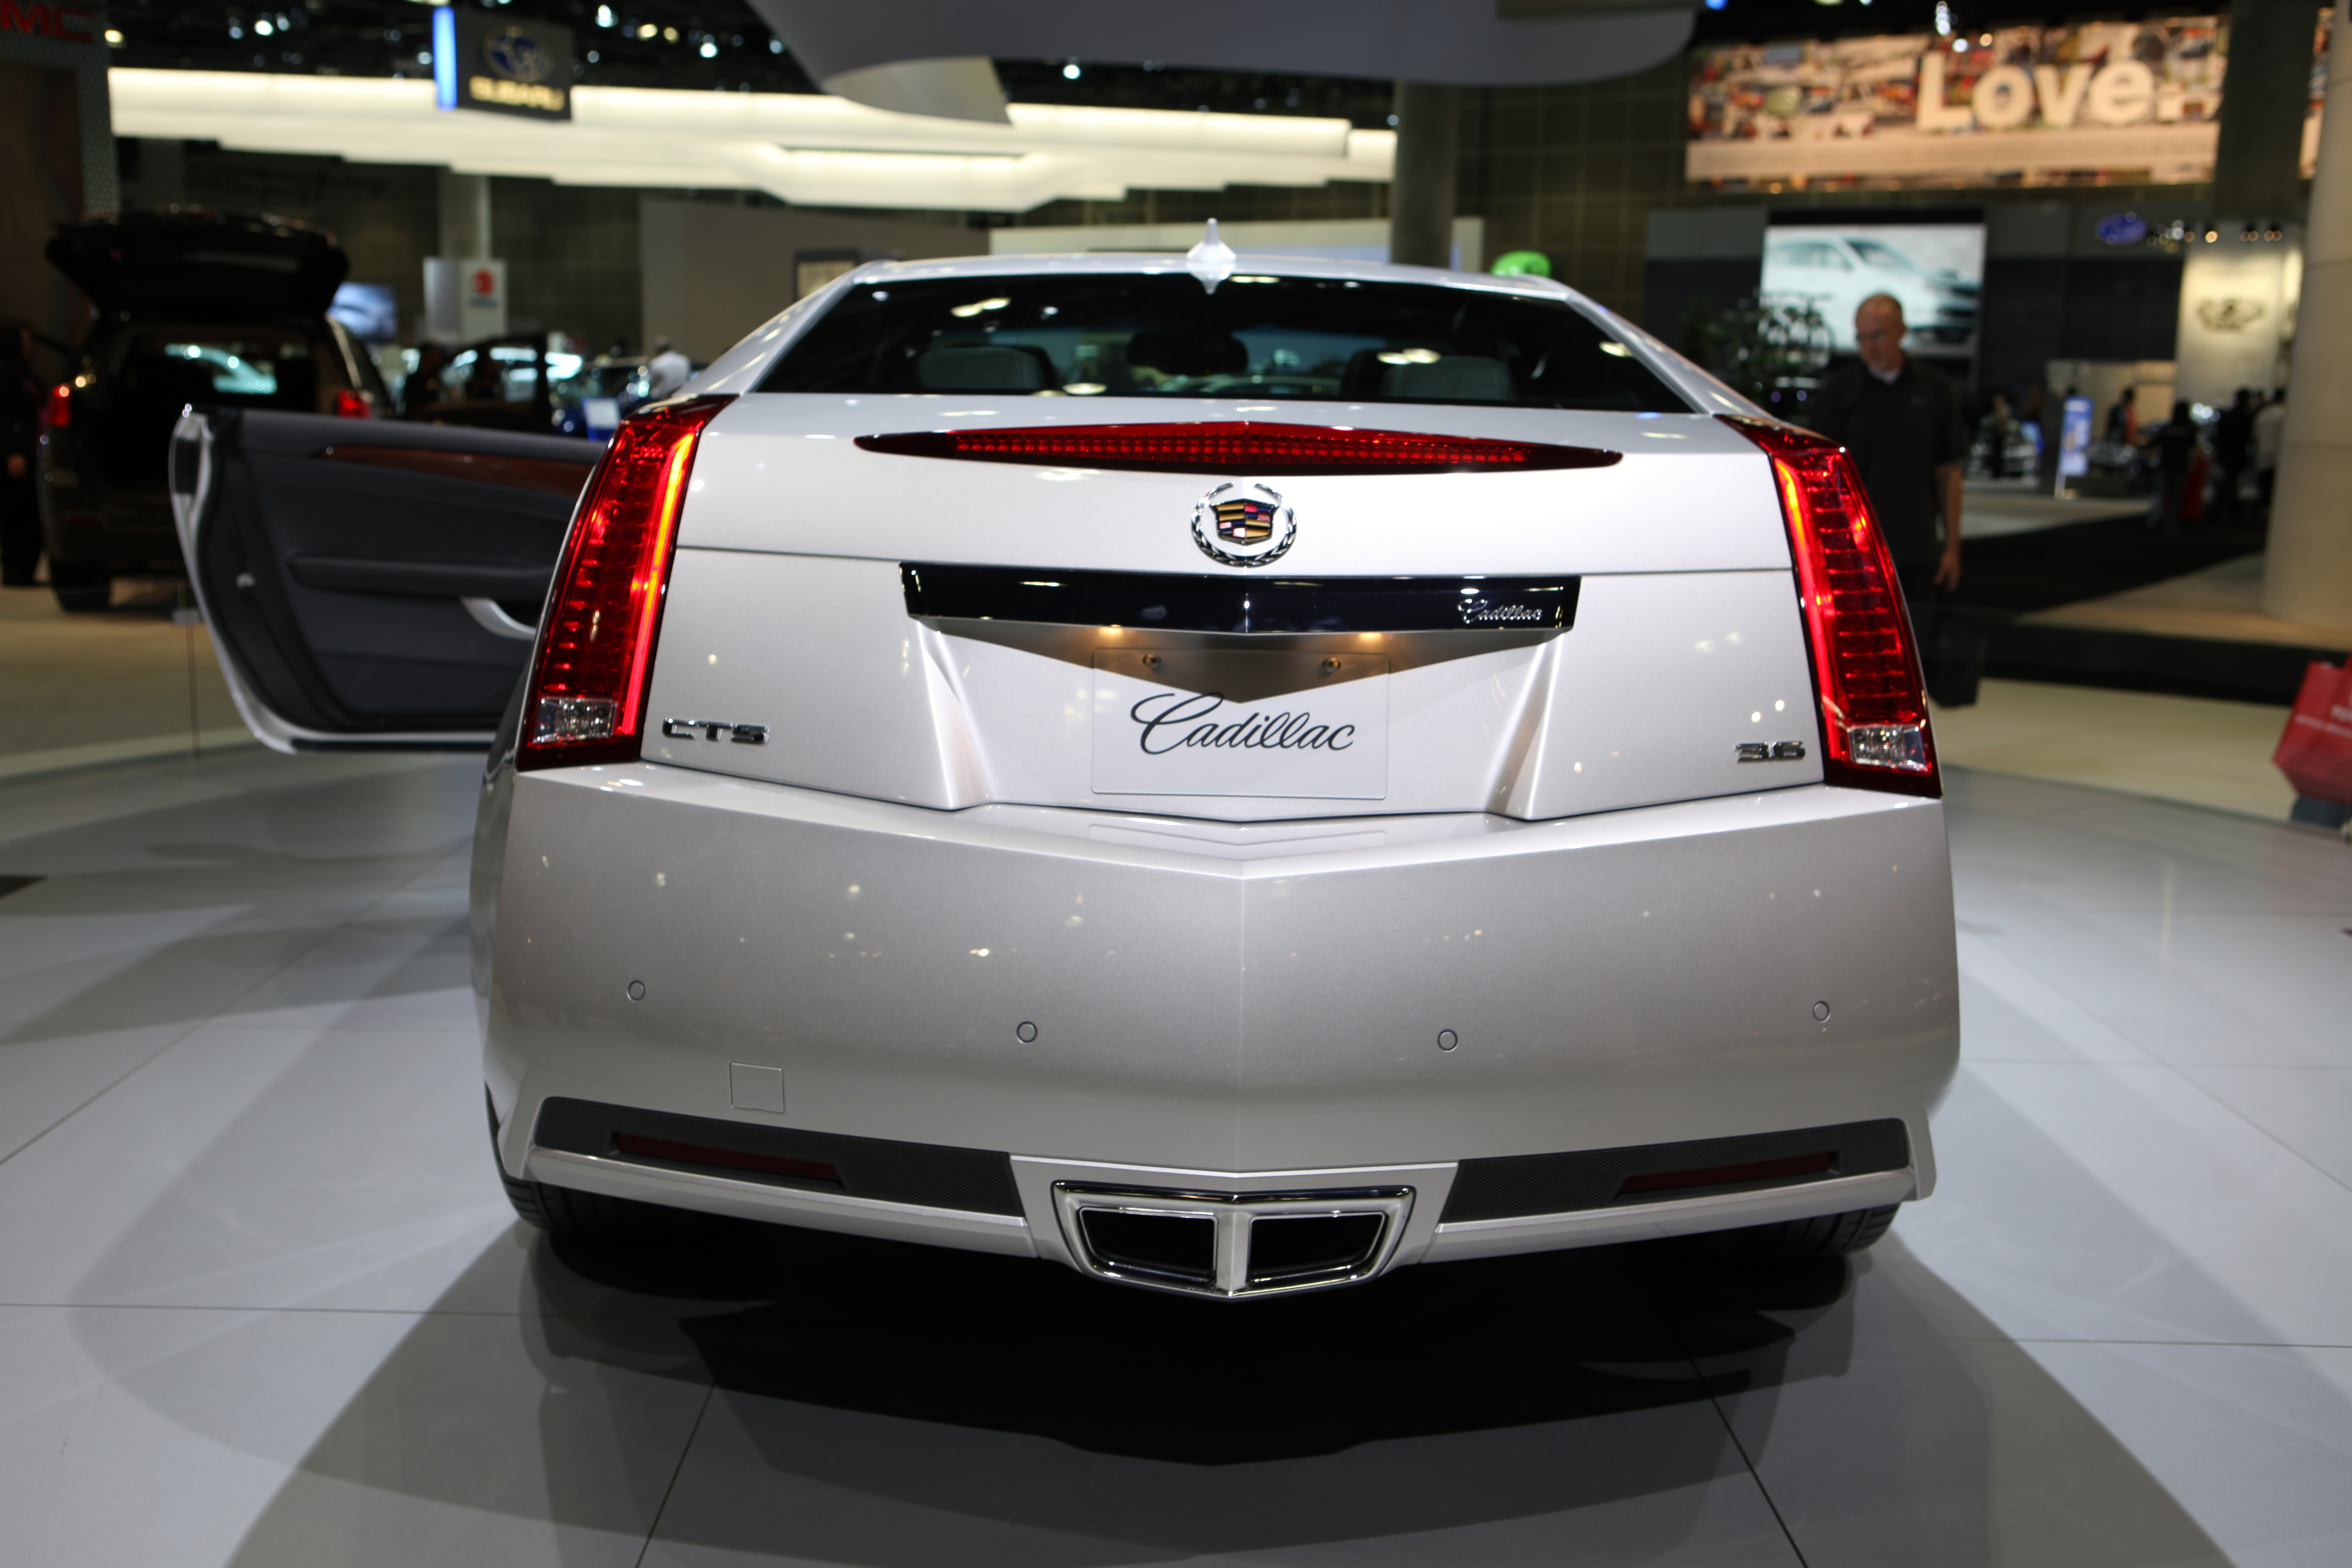 2011 Cadillac CTS Coupe Rear Wallpaper For Phone